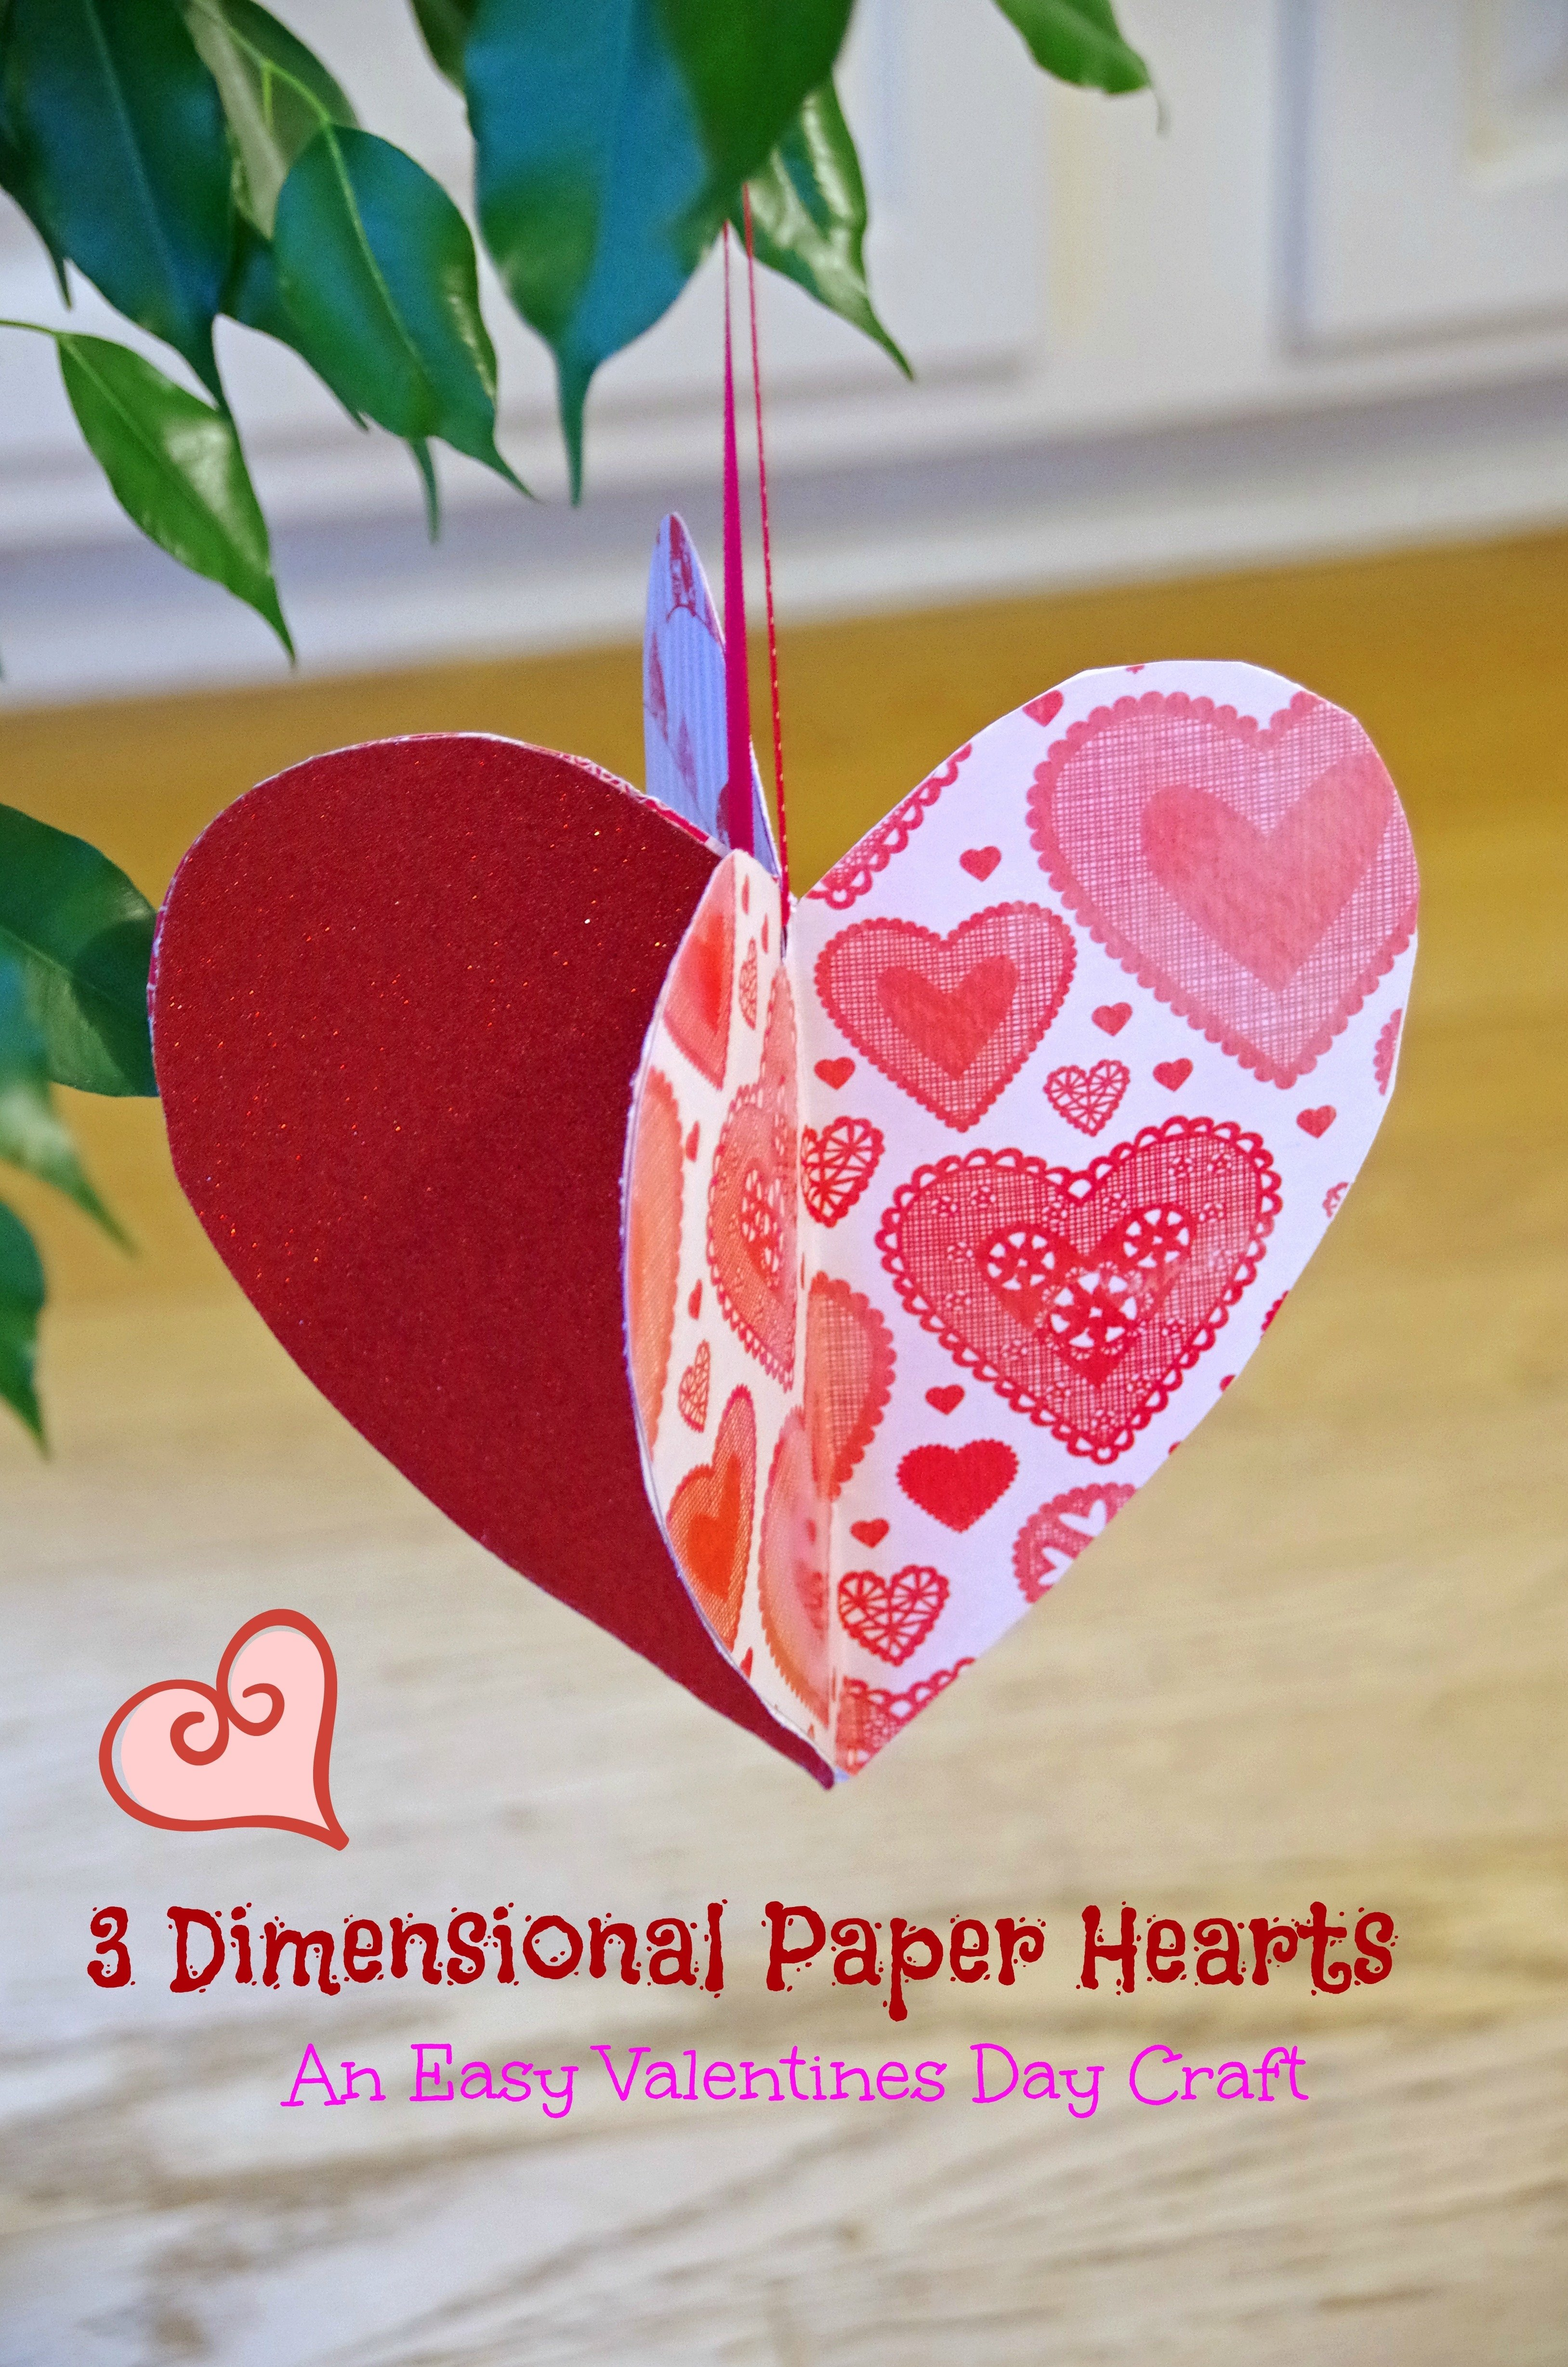 10 Fashionable Valentines Day Craft Ideas For Kids easy valentines day craft idea make 3d paper hearts suburbia 1 2020